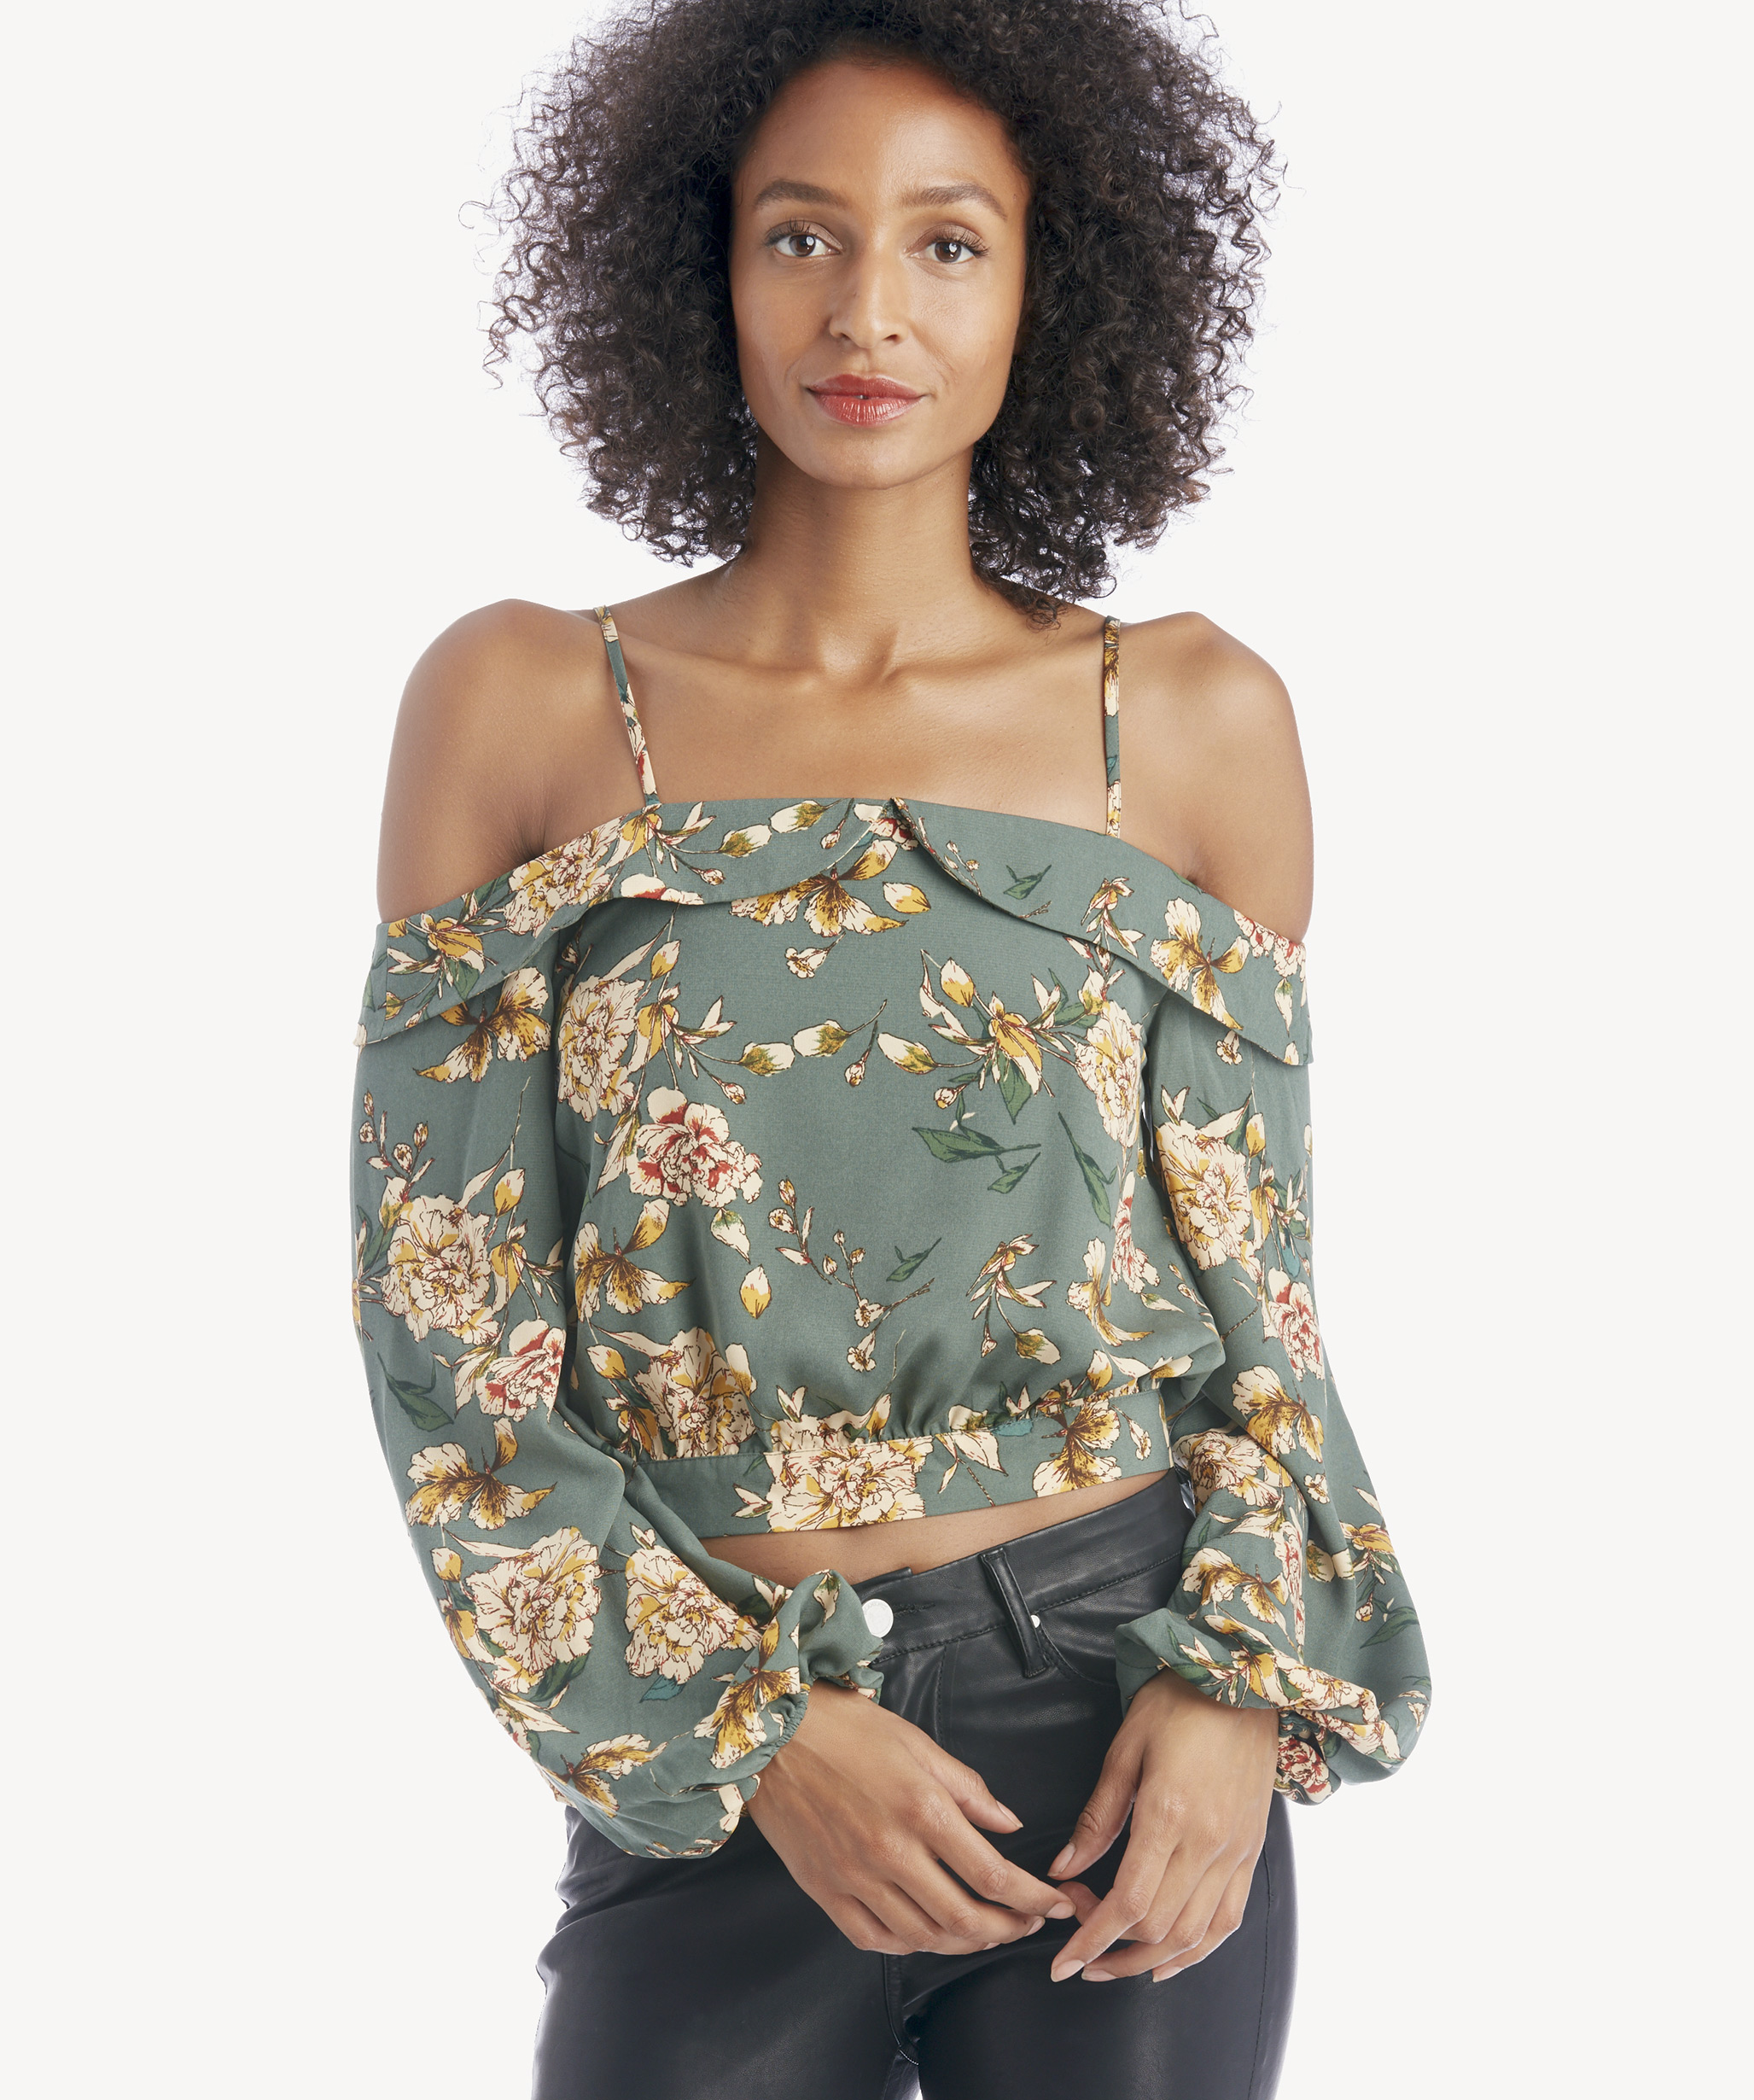 76a299eea8b J.O.A. Women's Cold Shoulder Puff Sleeve Top In Color: Green Floral   Size  XS From Sole Society